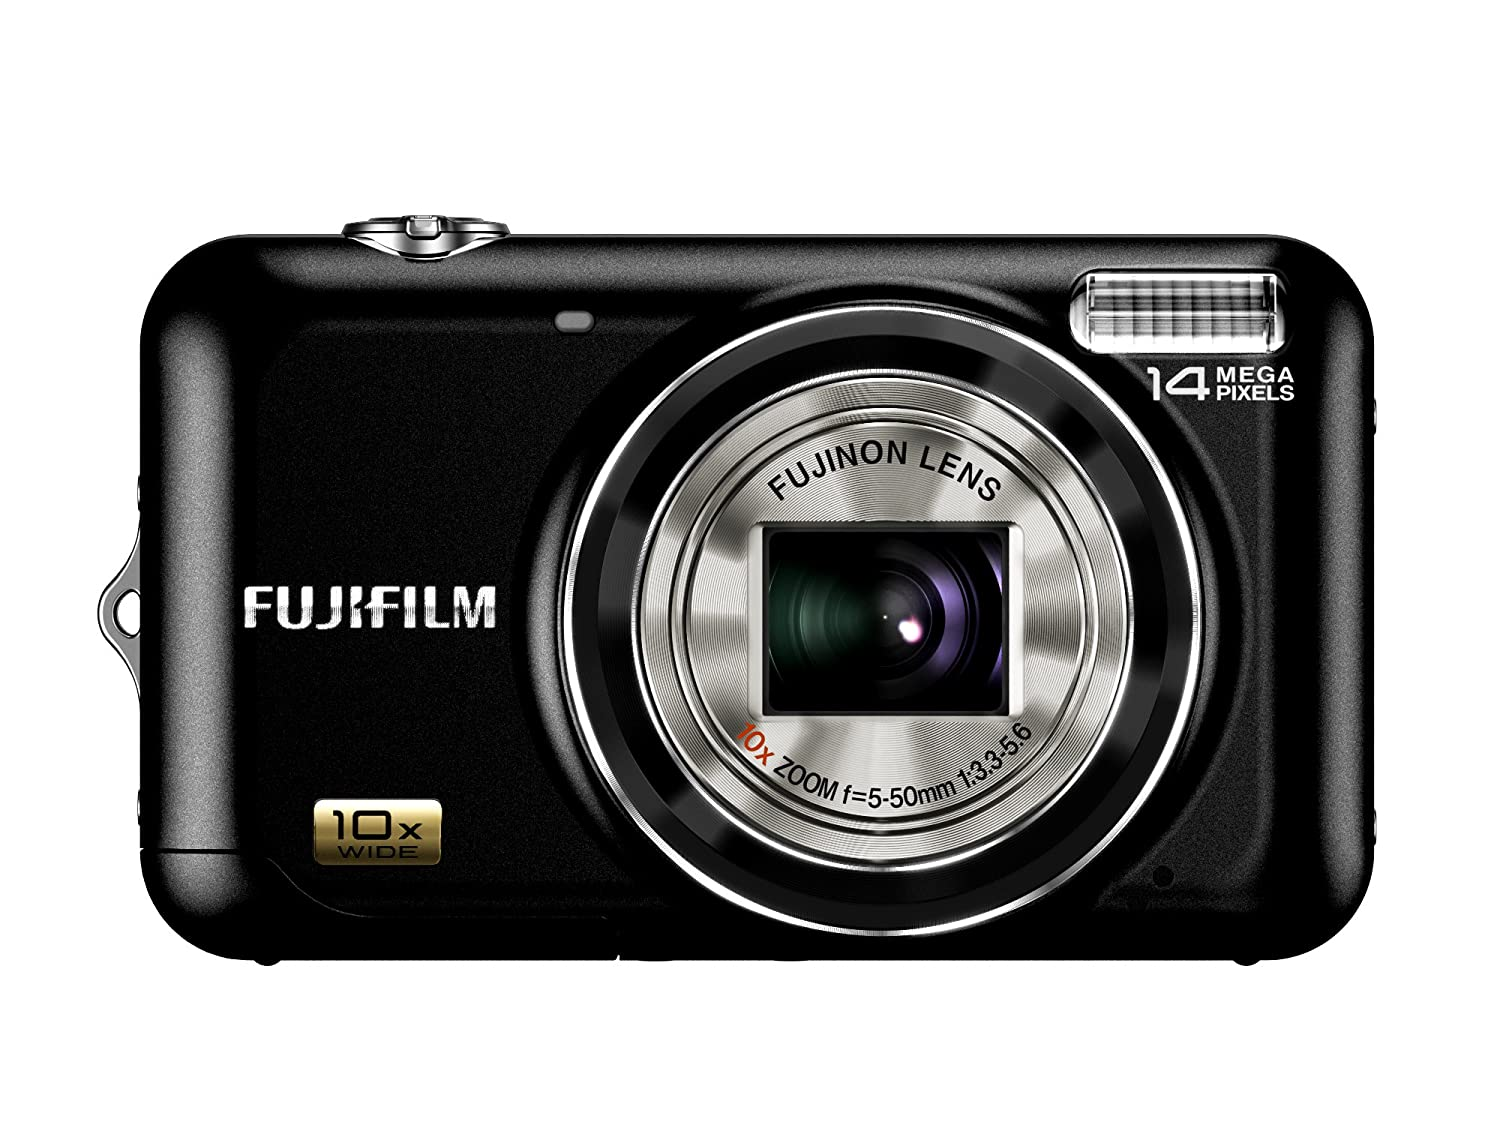 Fujifilm FinePix JV1004 Camera Driver for Windows